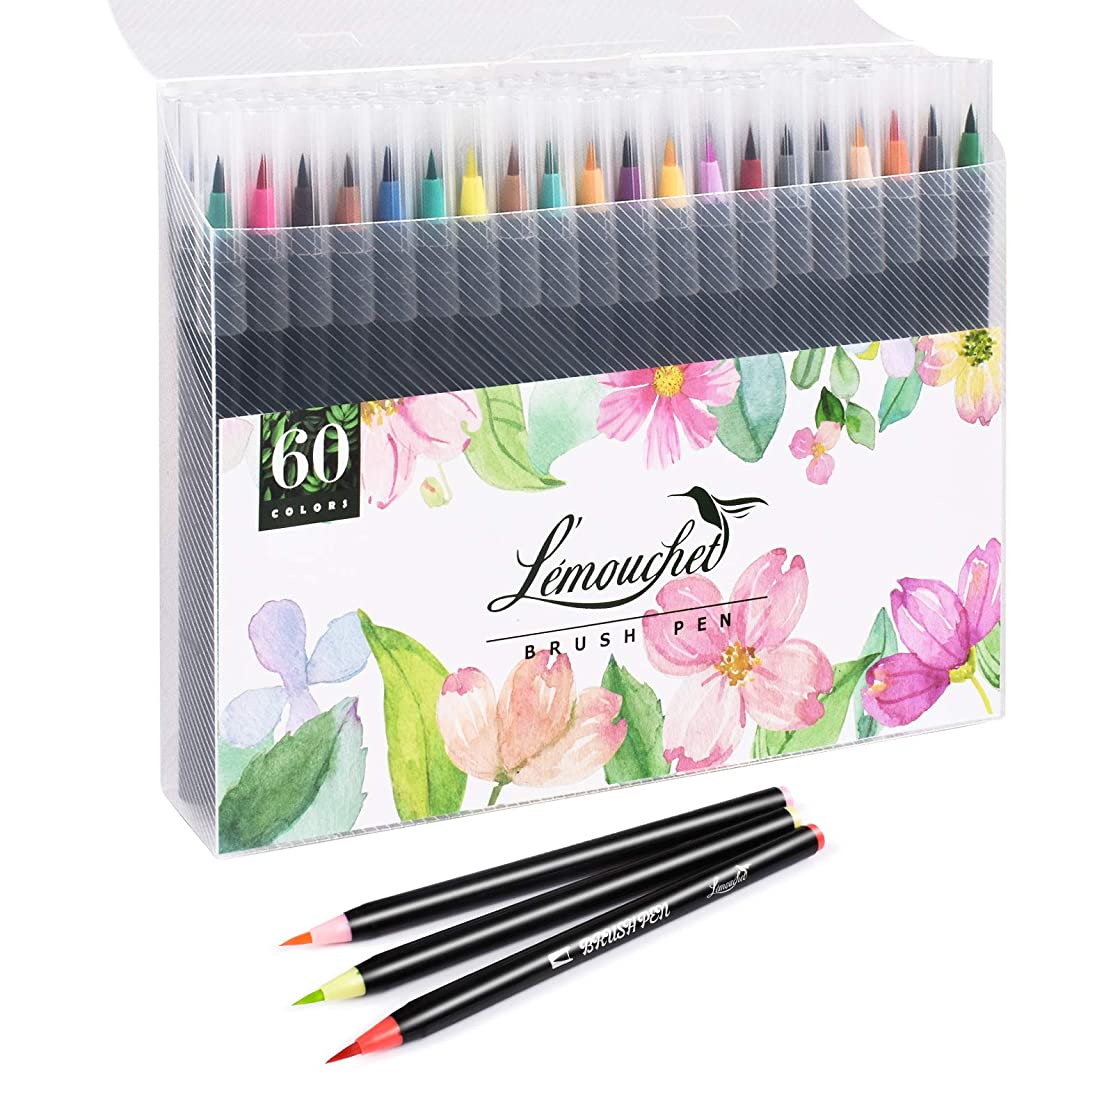 L'éMOUCHET 60 Watercolor Brush Markers Pen Art Markers, Water Based Drawing Marker Brushes Colored Pens Set for Adult Coloring Books Manga Comic Calligraphy Journal Note Taking Drawing Planner Art